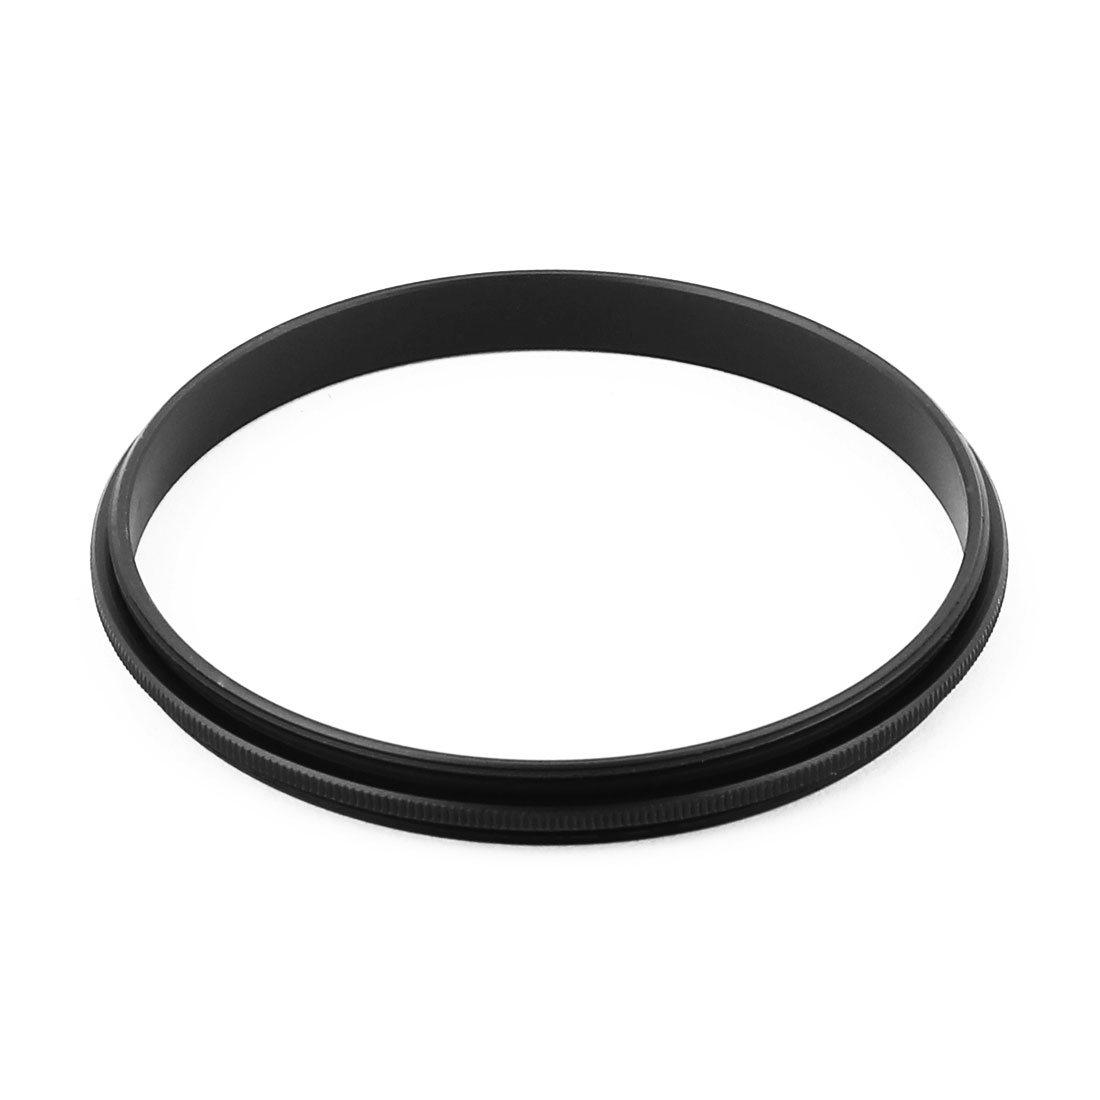 62mm-62mm 62mm to 62mm Male to Male Step Ring Adapter Black for Camera